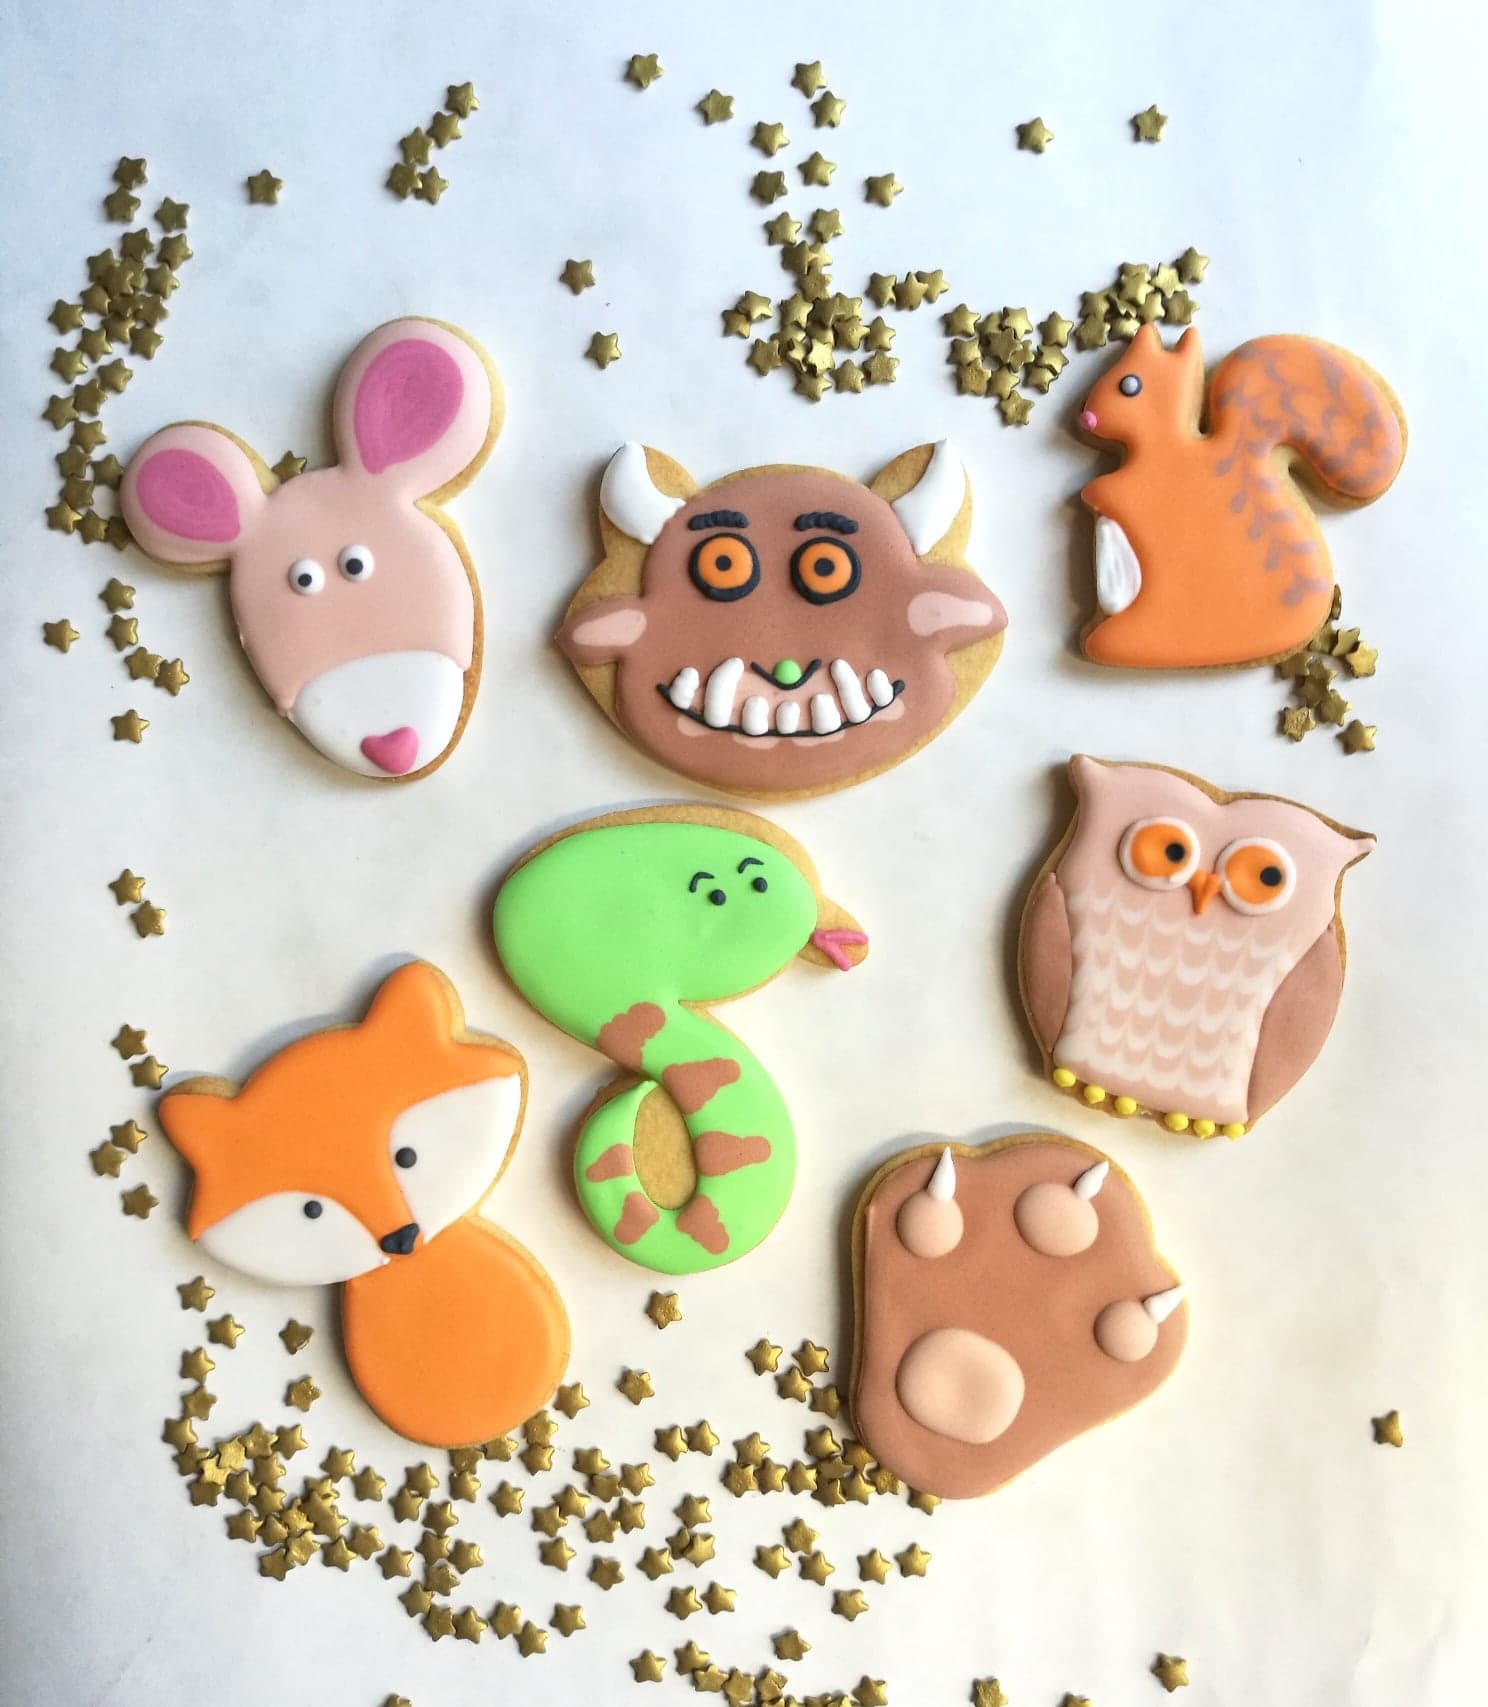 craft class for toddlers decorating Gruffalo themed biscuits.